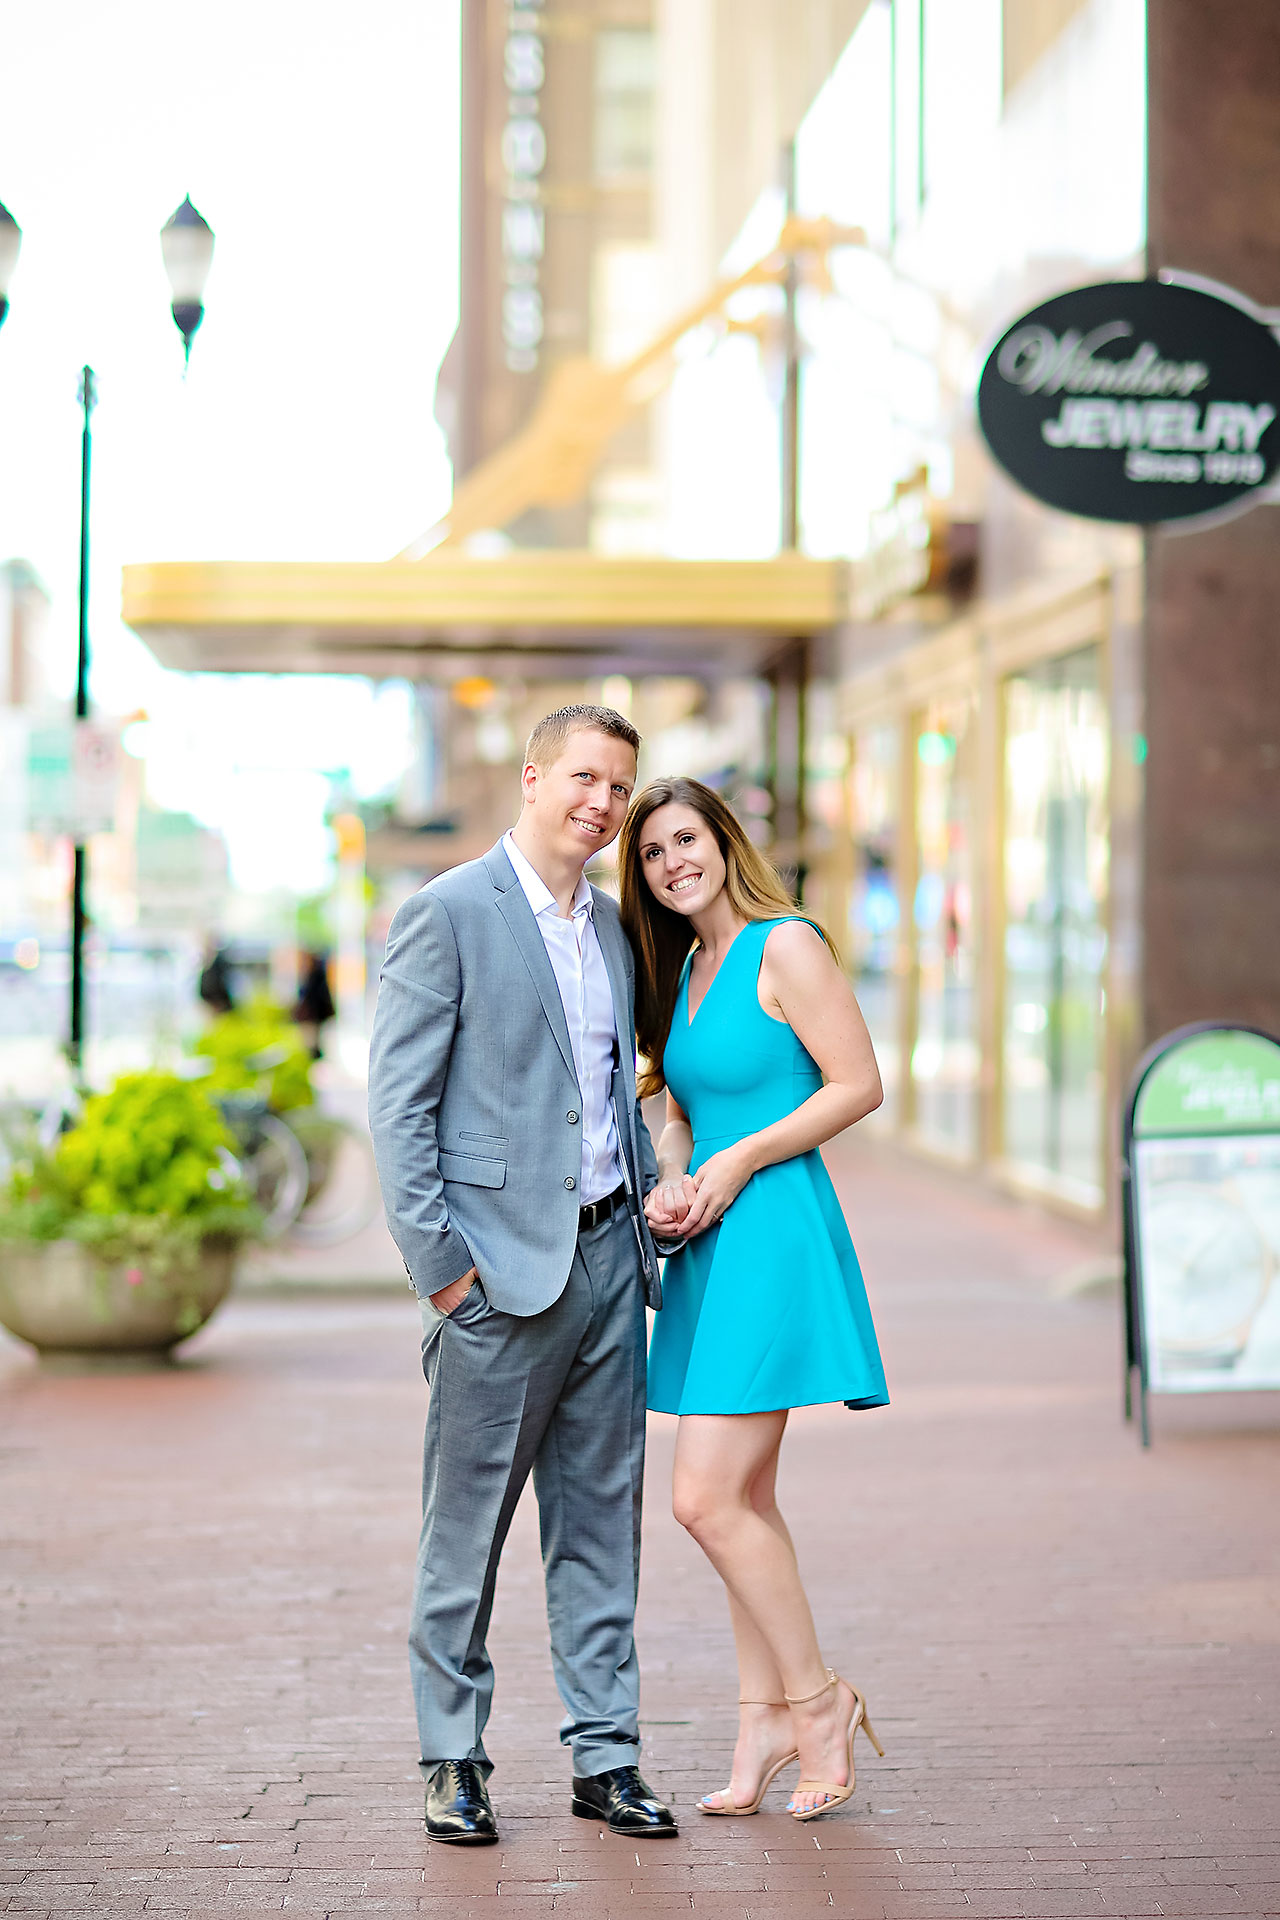 Chelsea Jeff Downtown Indy Engagement Session 104